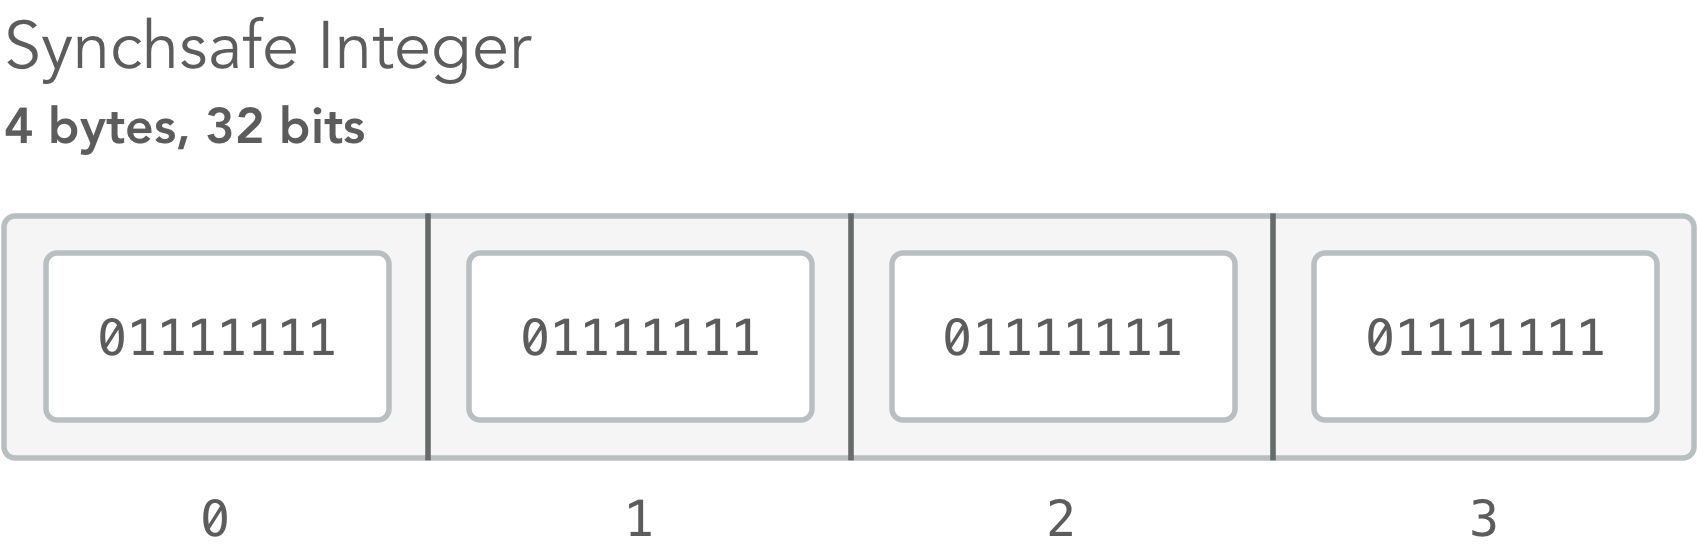 Synchsafe integers